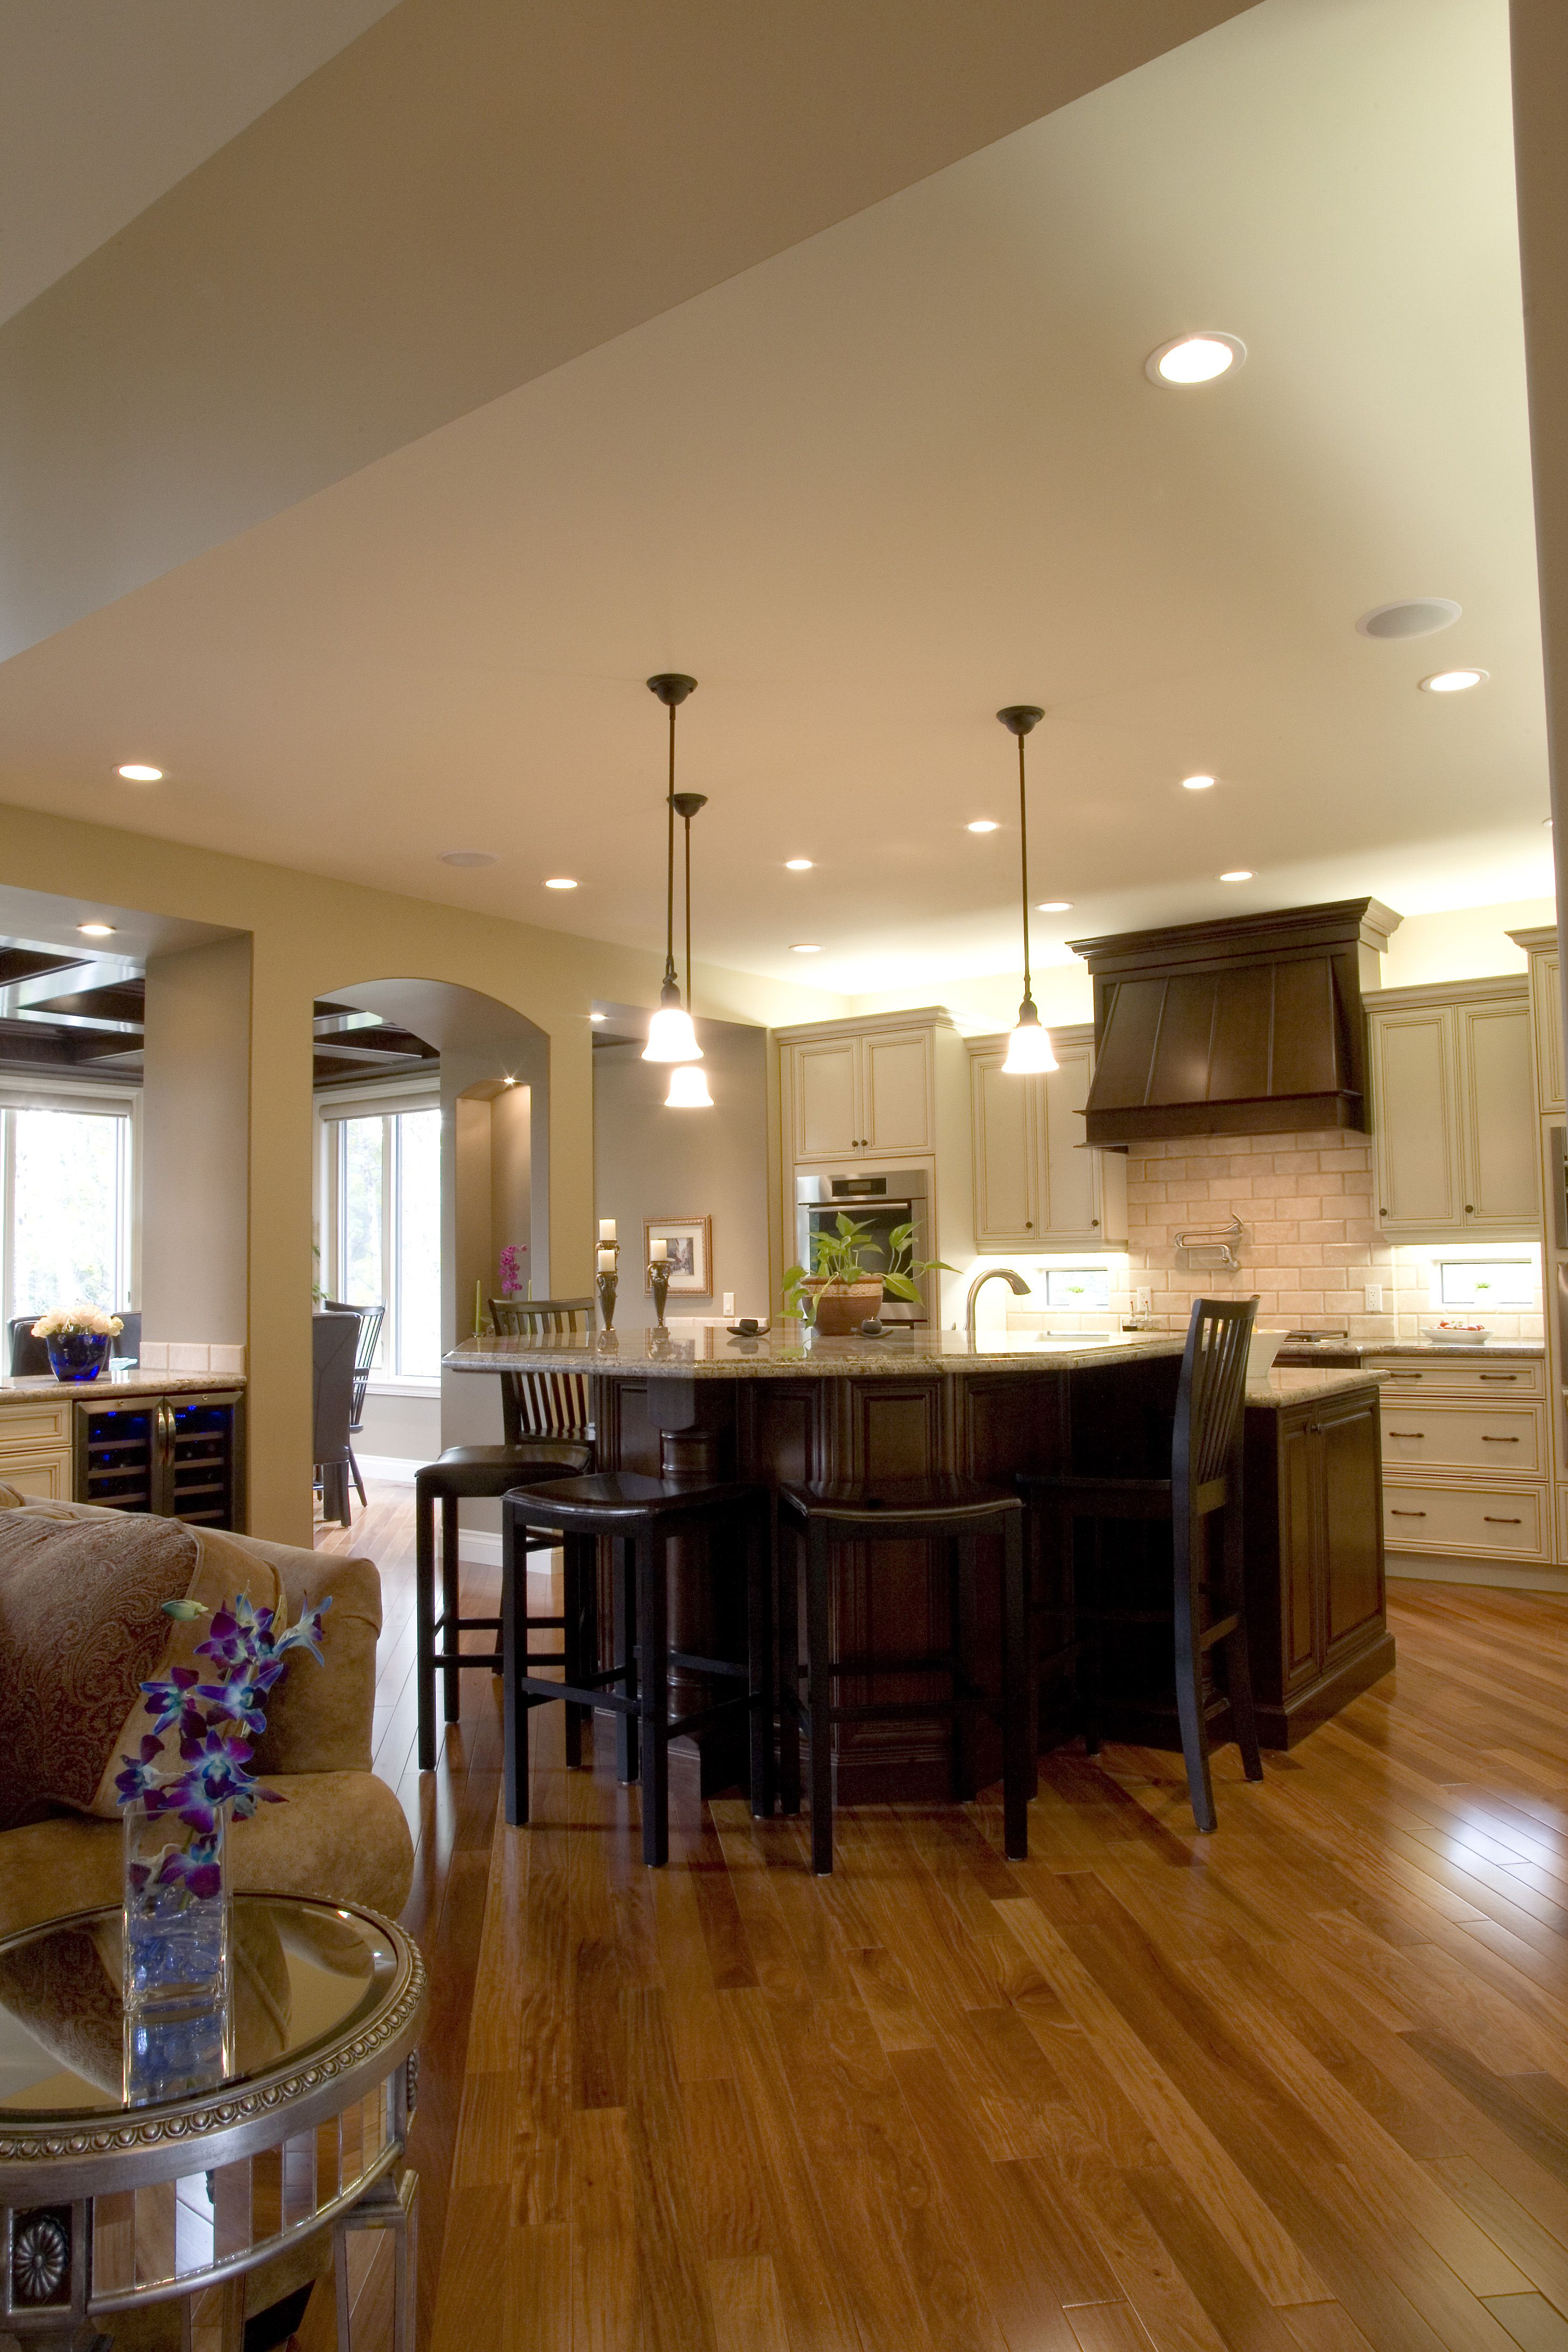 Granite Countertops Surface Twin Finish Maple Cabinetry With A Cappuccino  Stained Island And Range Hood Alongside